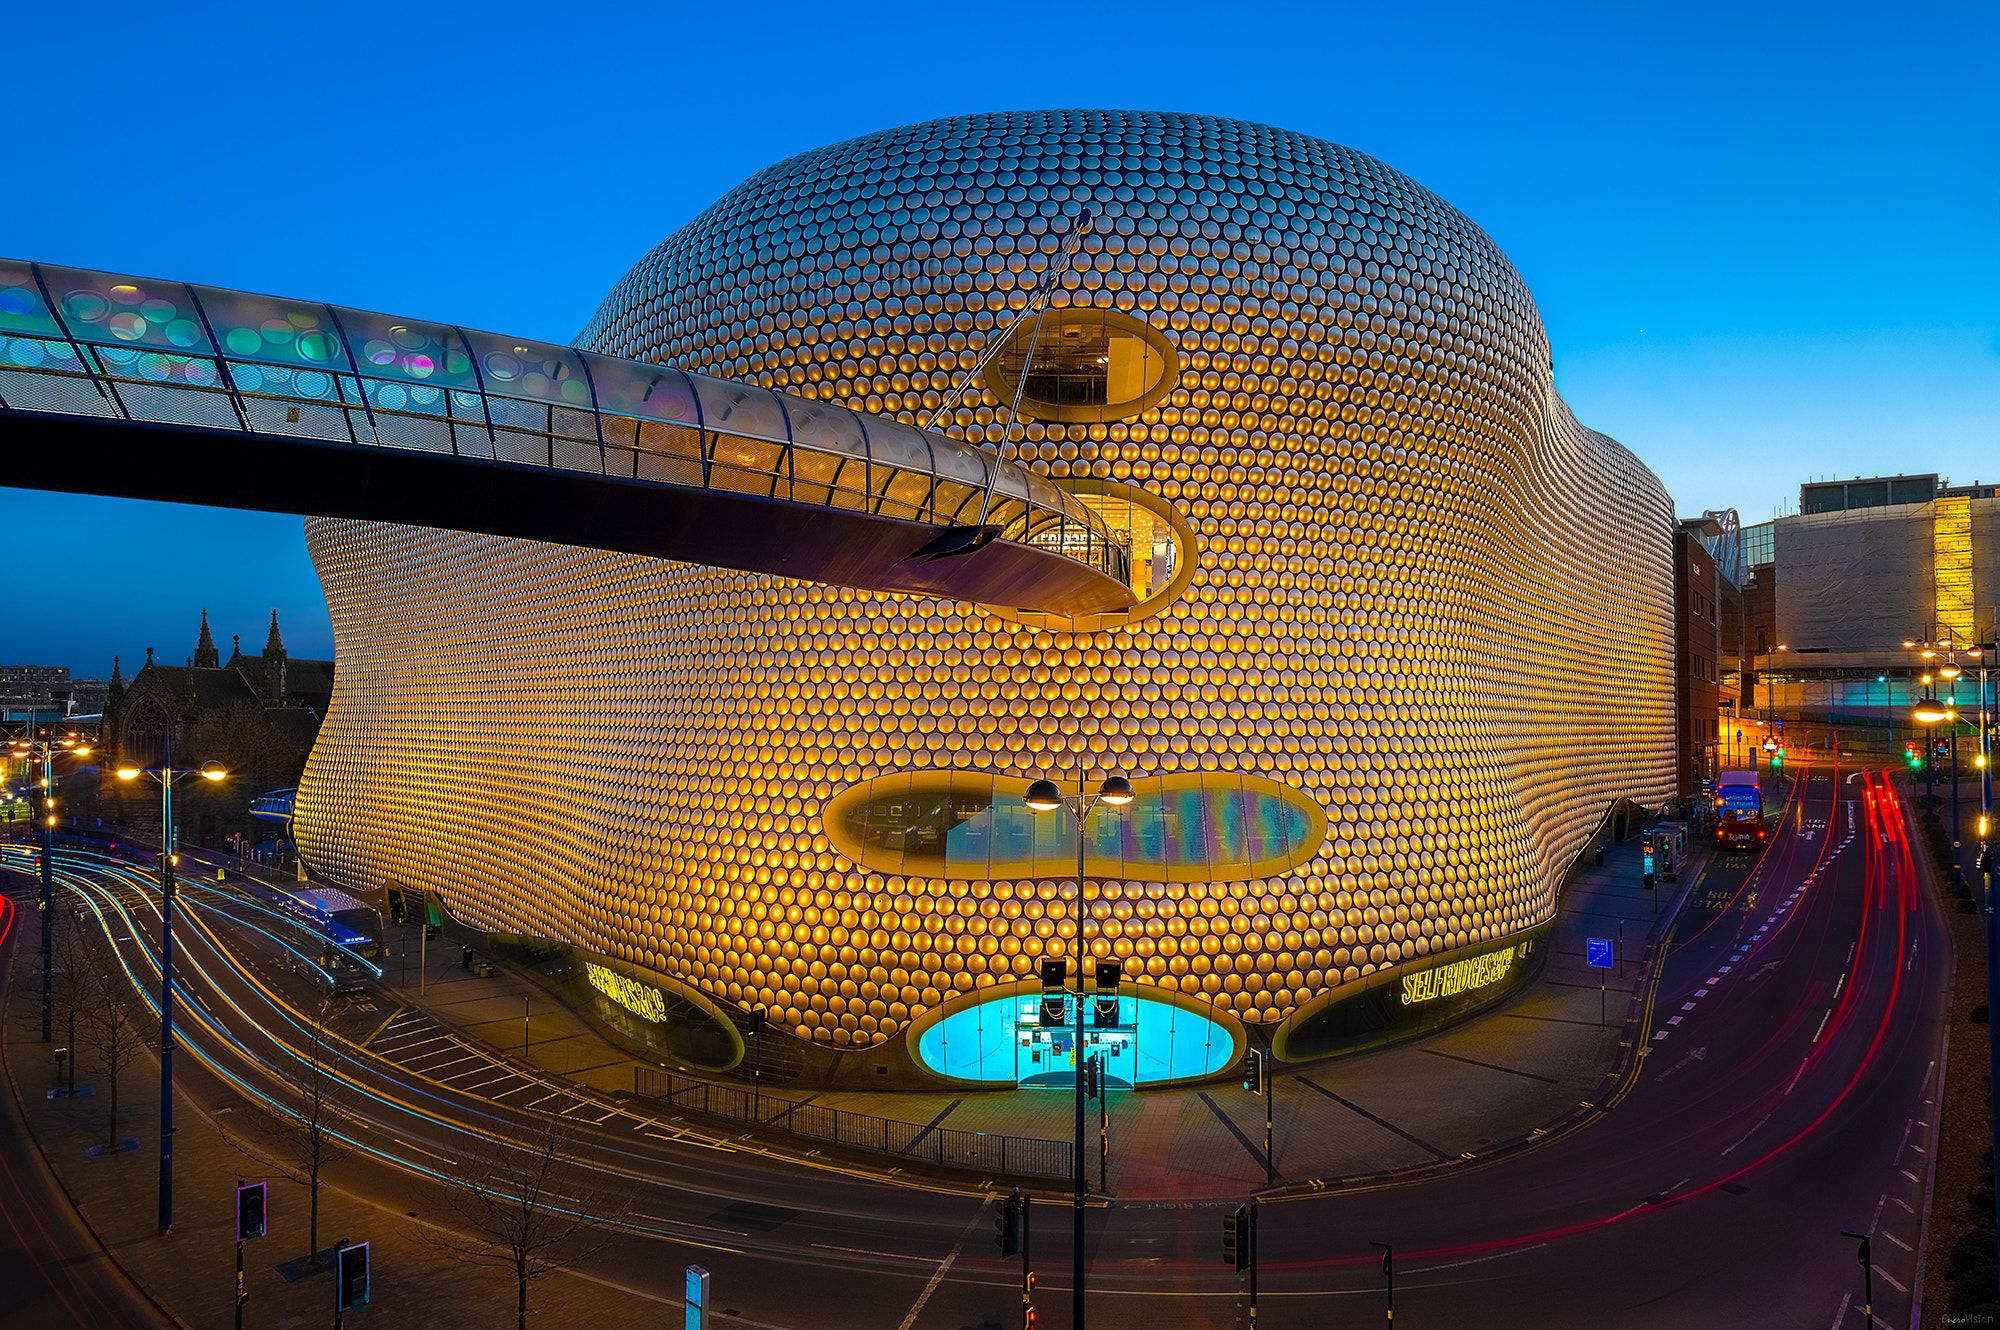 bc203dd97dbf8 Selfridges Birmingham. - Selfridges Birmingham is one of the city s most  distinctive landmarks and the in-store experience is equally as  show-stopping